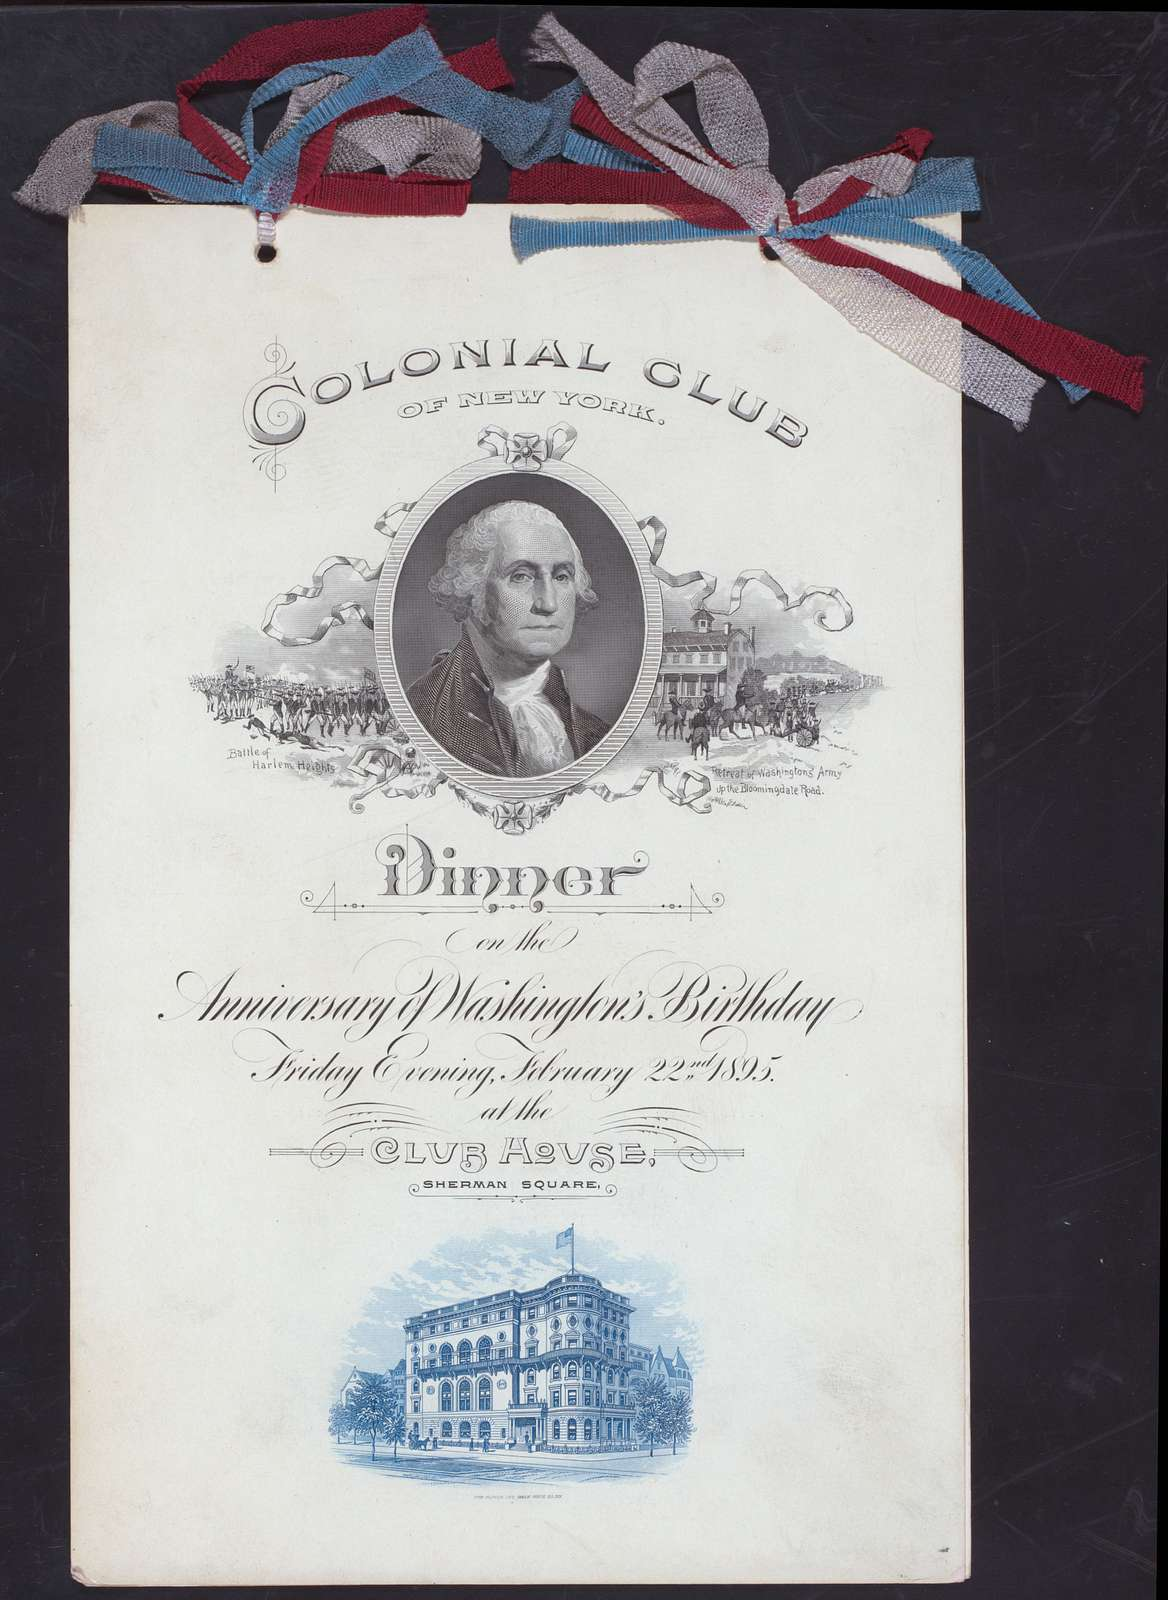 """WASHINGTON'S BIRTHDAY DINNER [held by] COLONIAL CLUB OF NEW YORK [at] """"CLUBHOUSE, SHERMAN SQUARE (NY?)"""" (OTHER (PRIVATE CLUB))"""